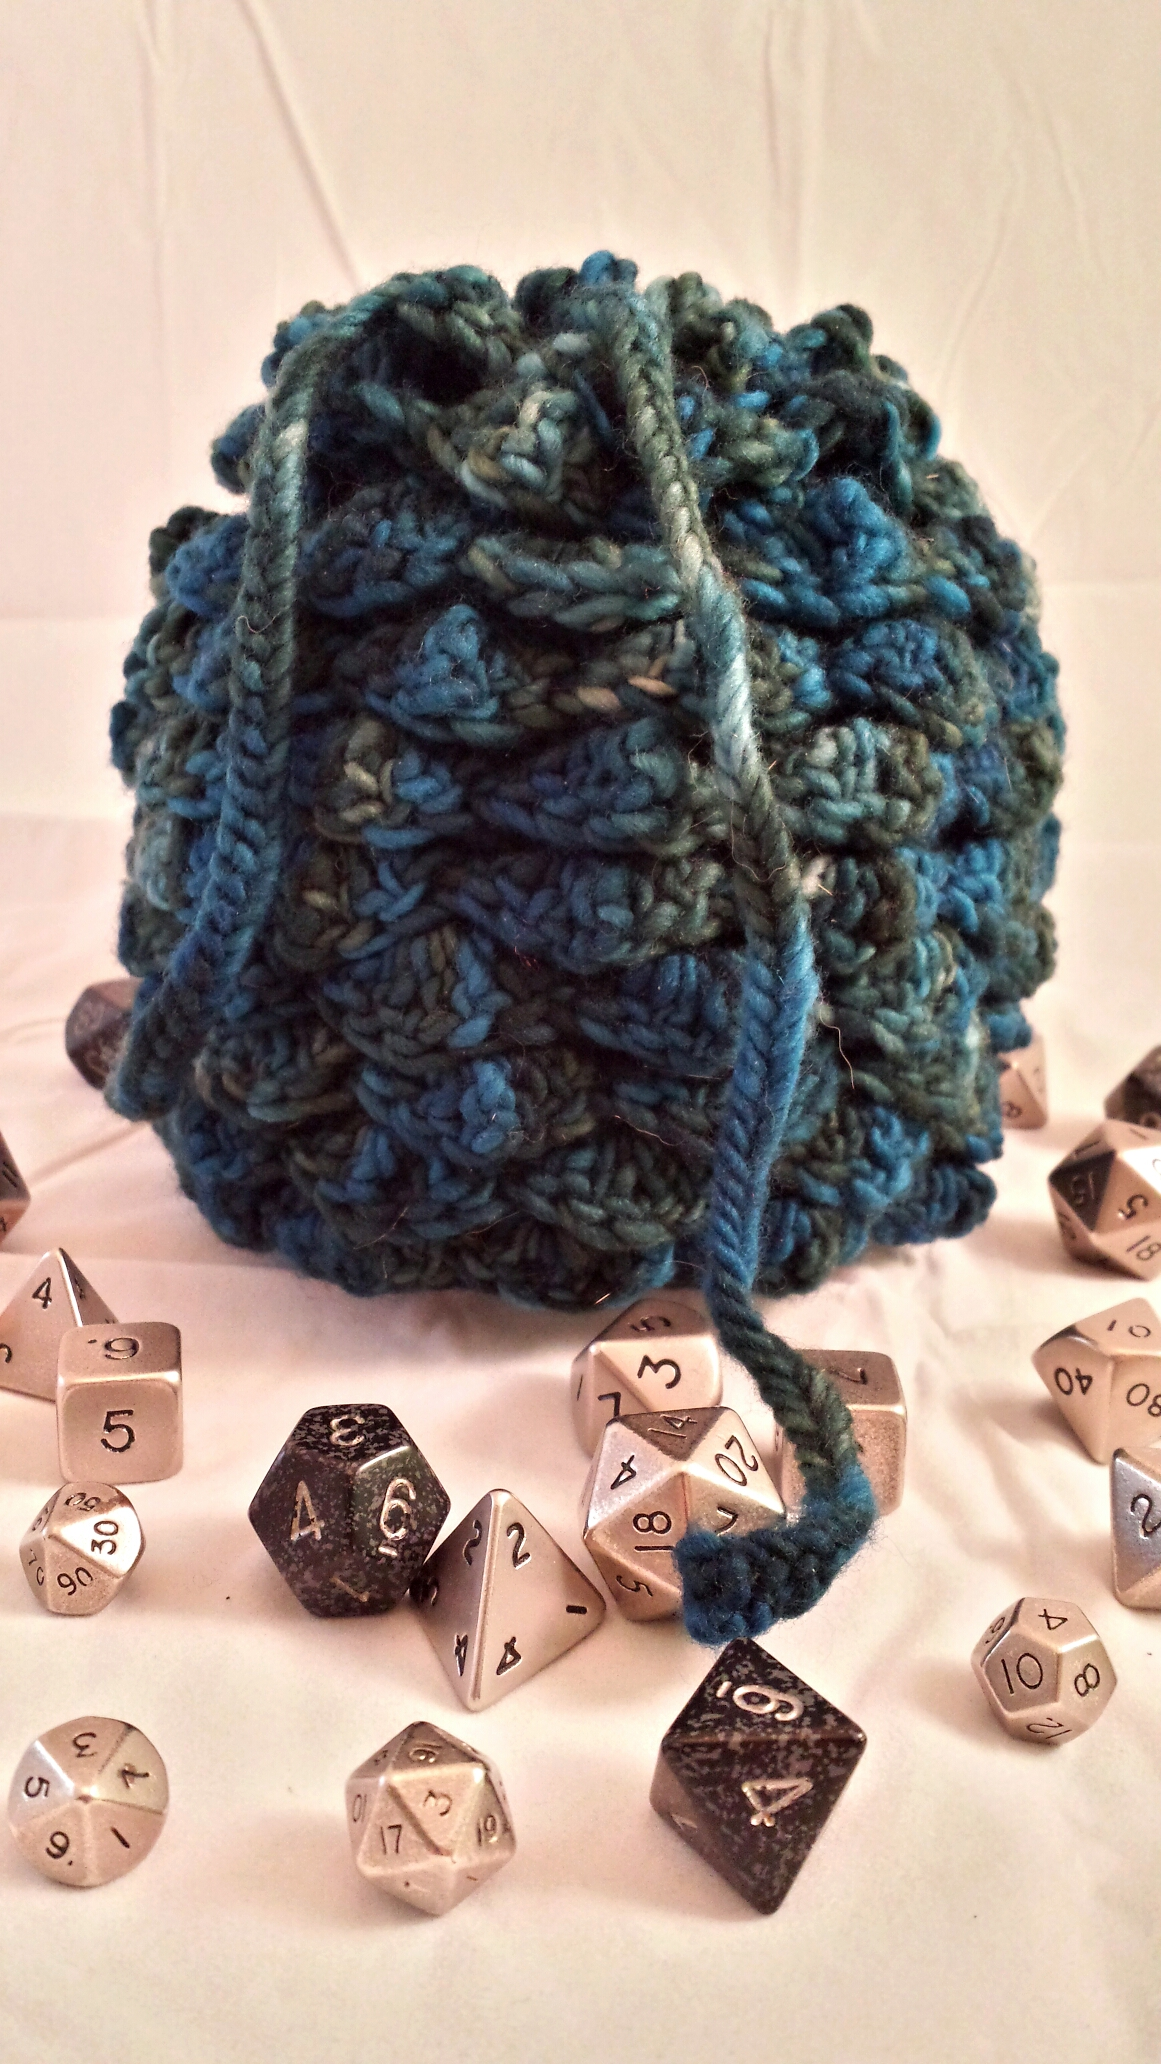 Dragon scale dice bag